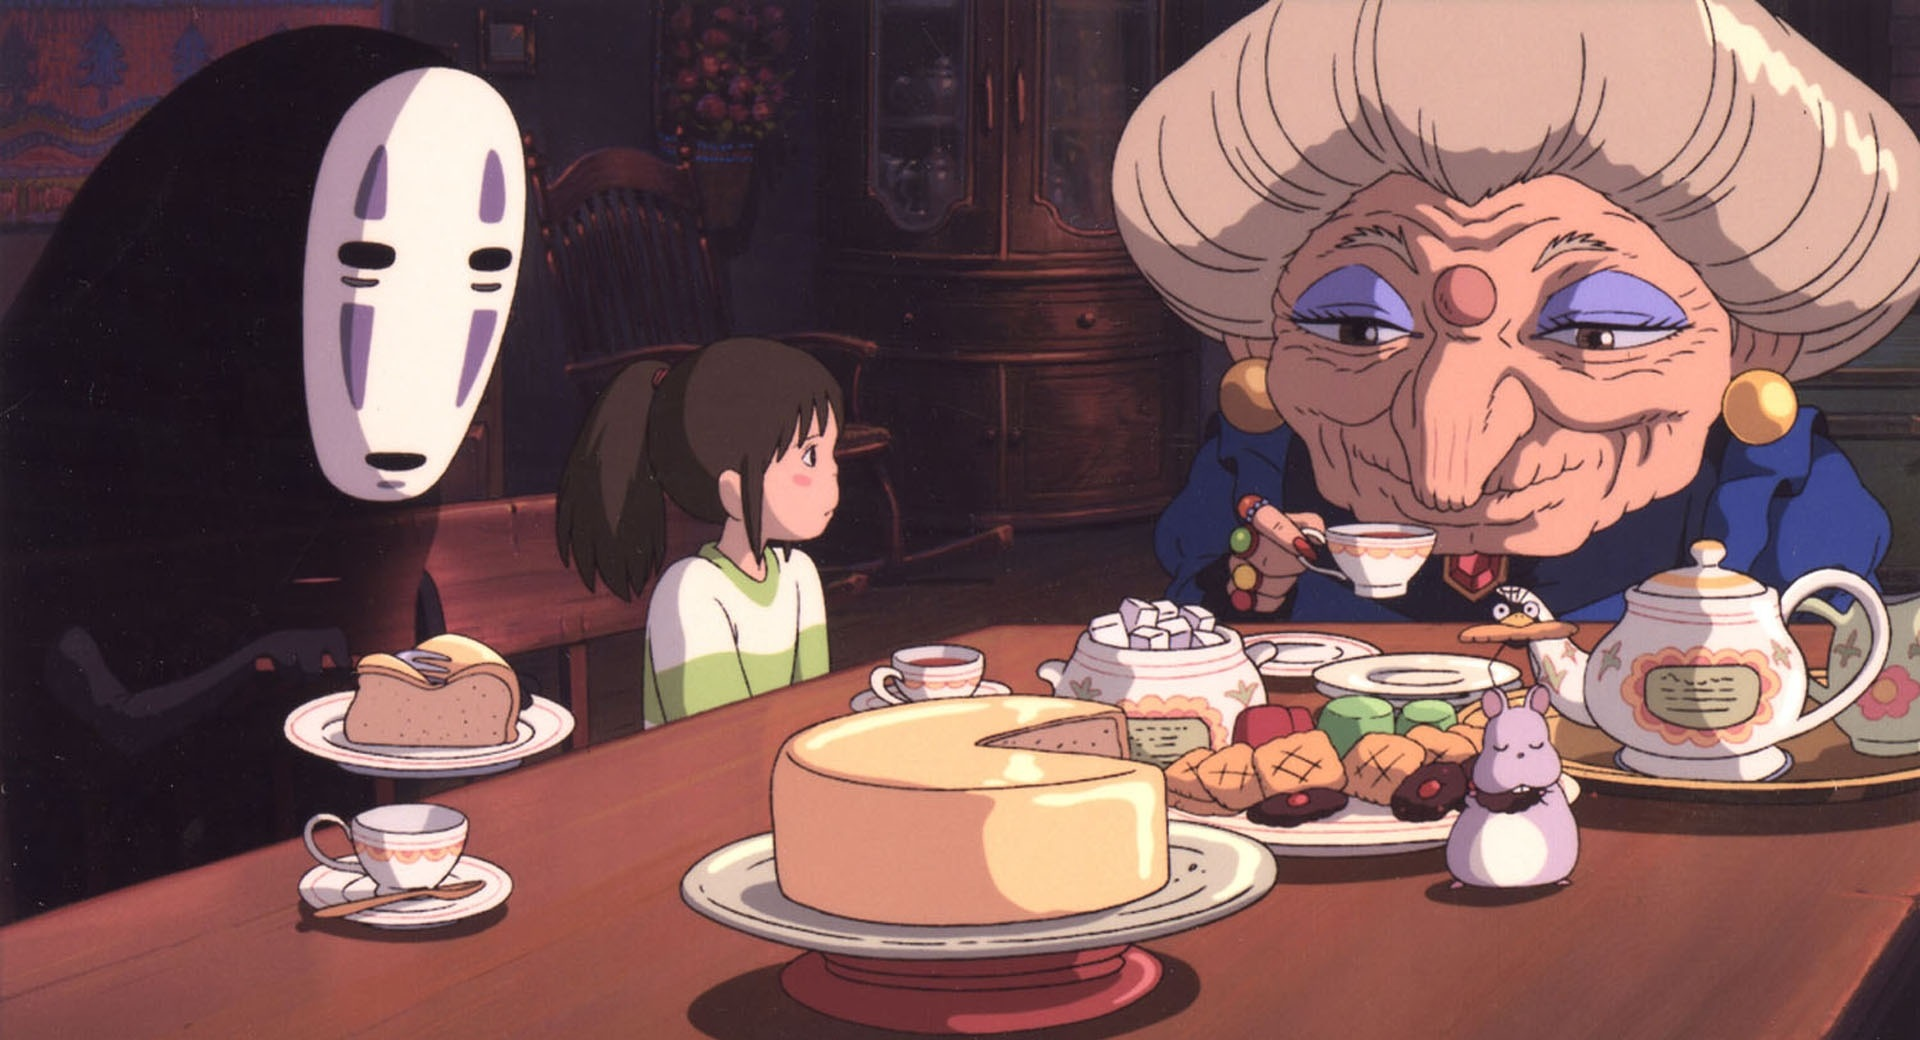 No Face, Chihiro, their transformed companions, and Zeniba enjoy their table of Ghibli Food.